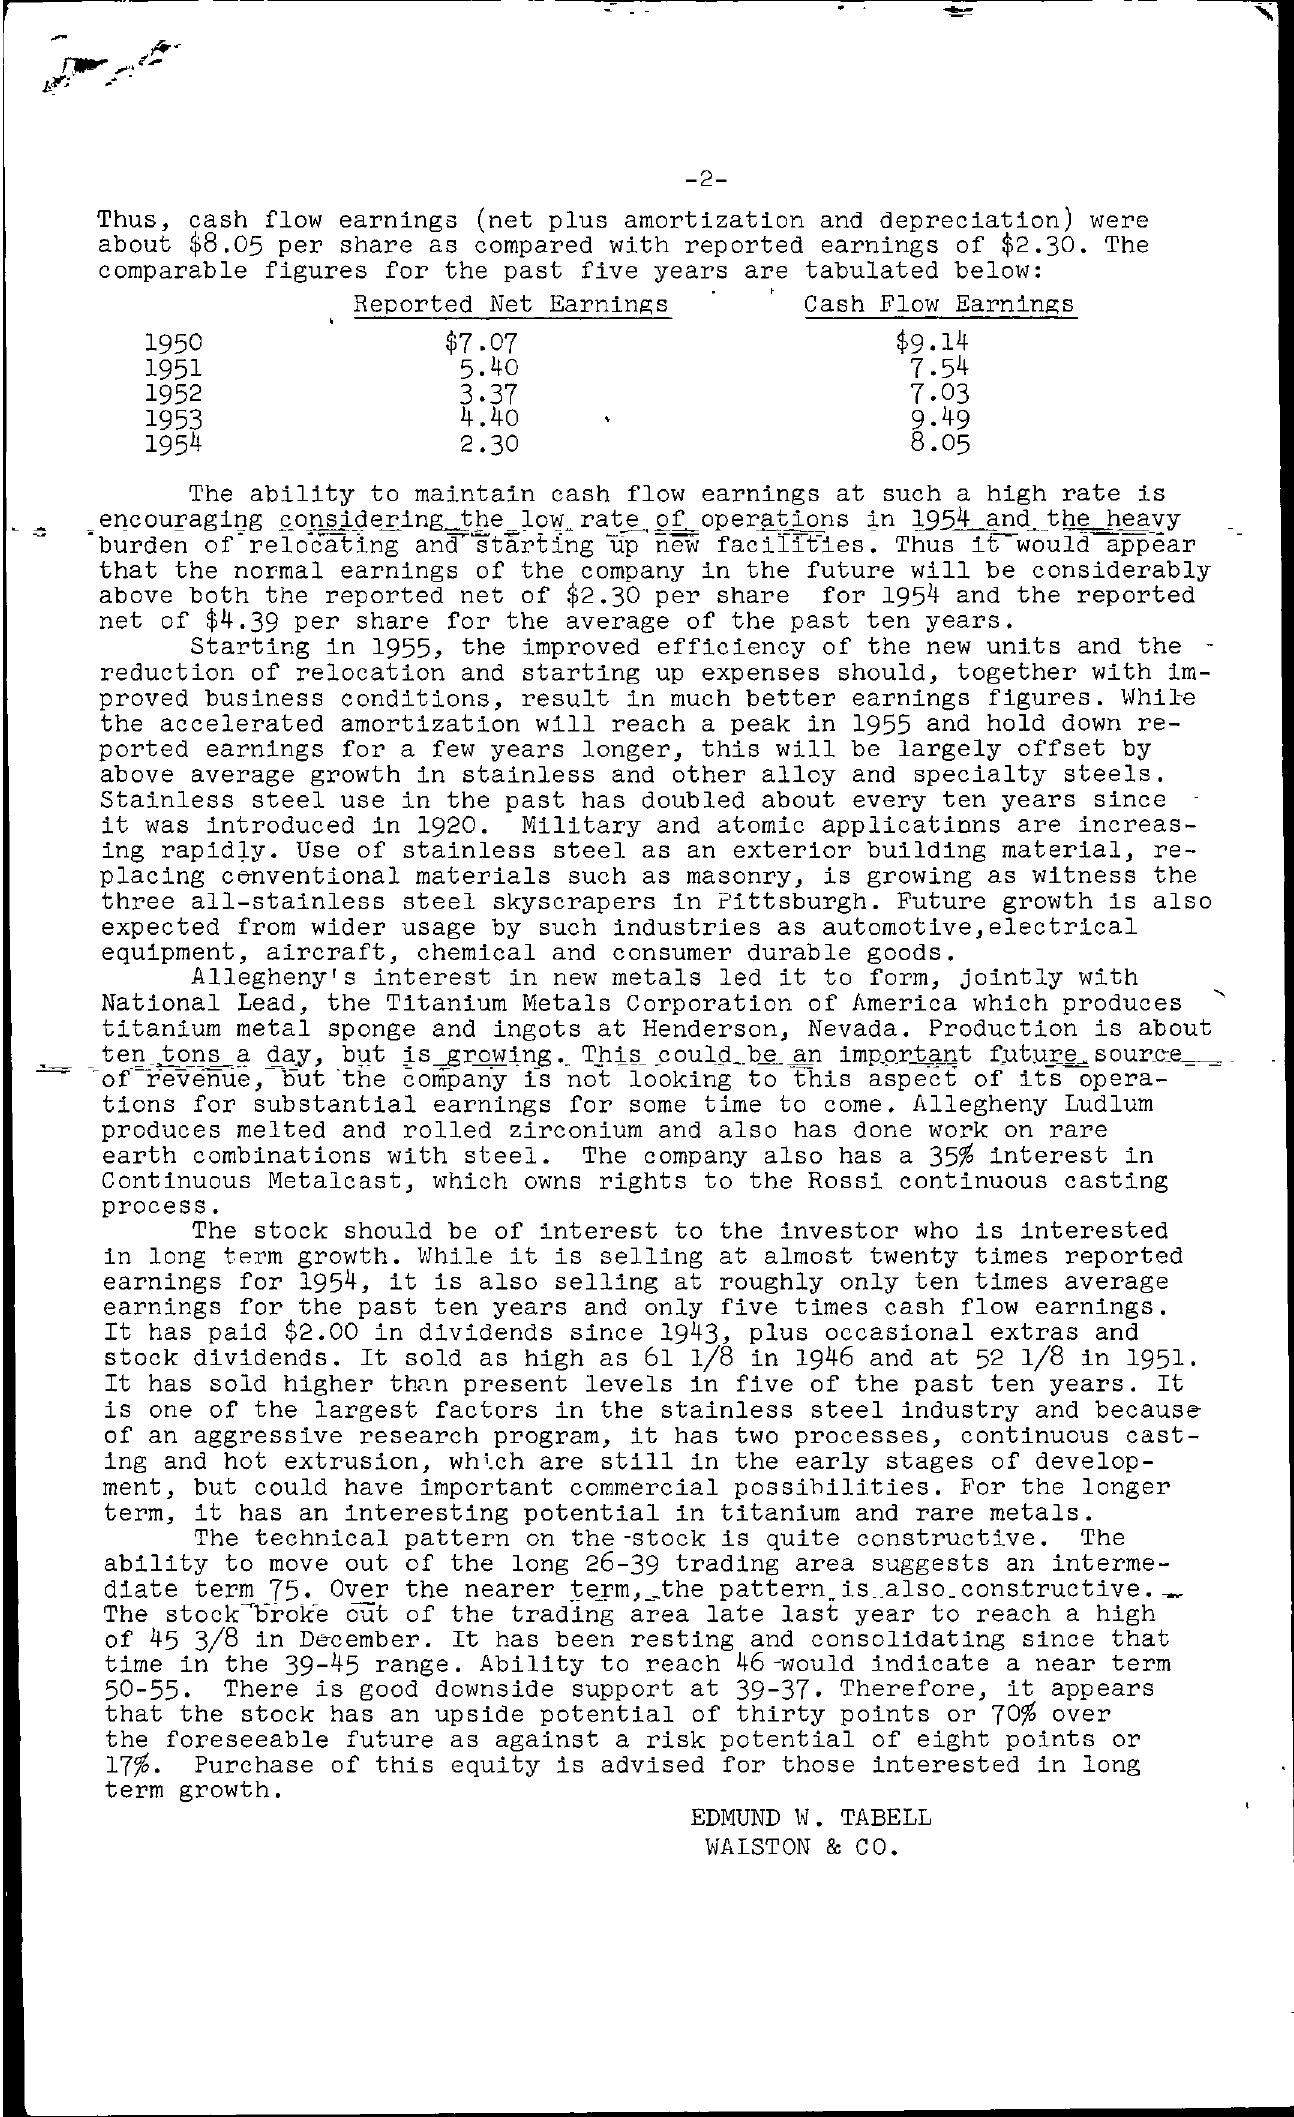 Tabell's Market Letter - February 04, 1955 page 2